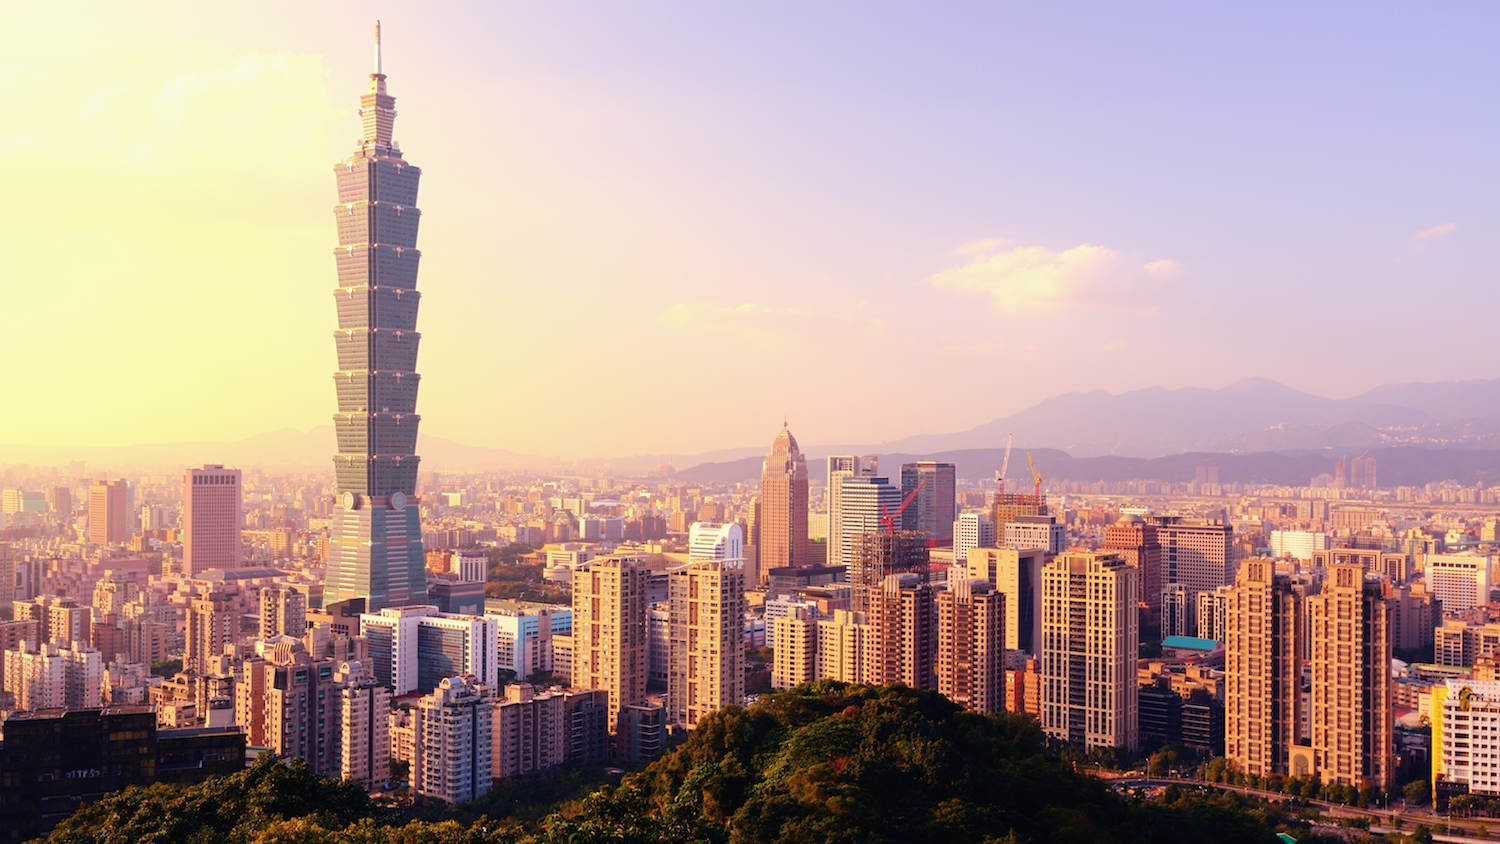 Taiwan's XREX Blockchain Firm Raises $17M in Funding Round Led by CDIB Capital